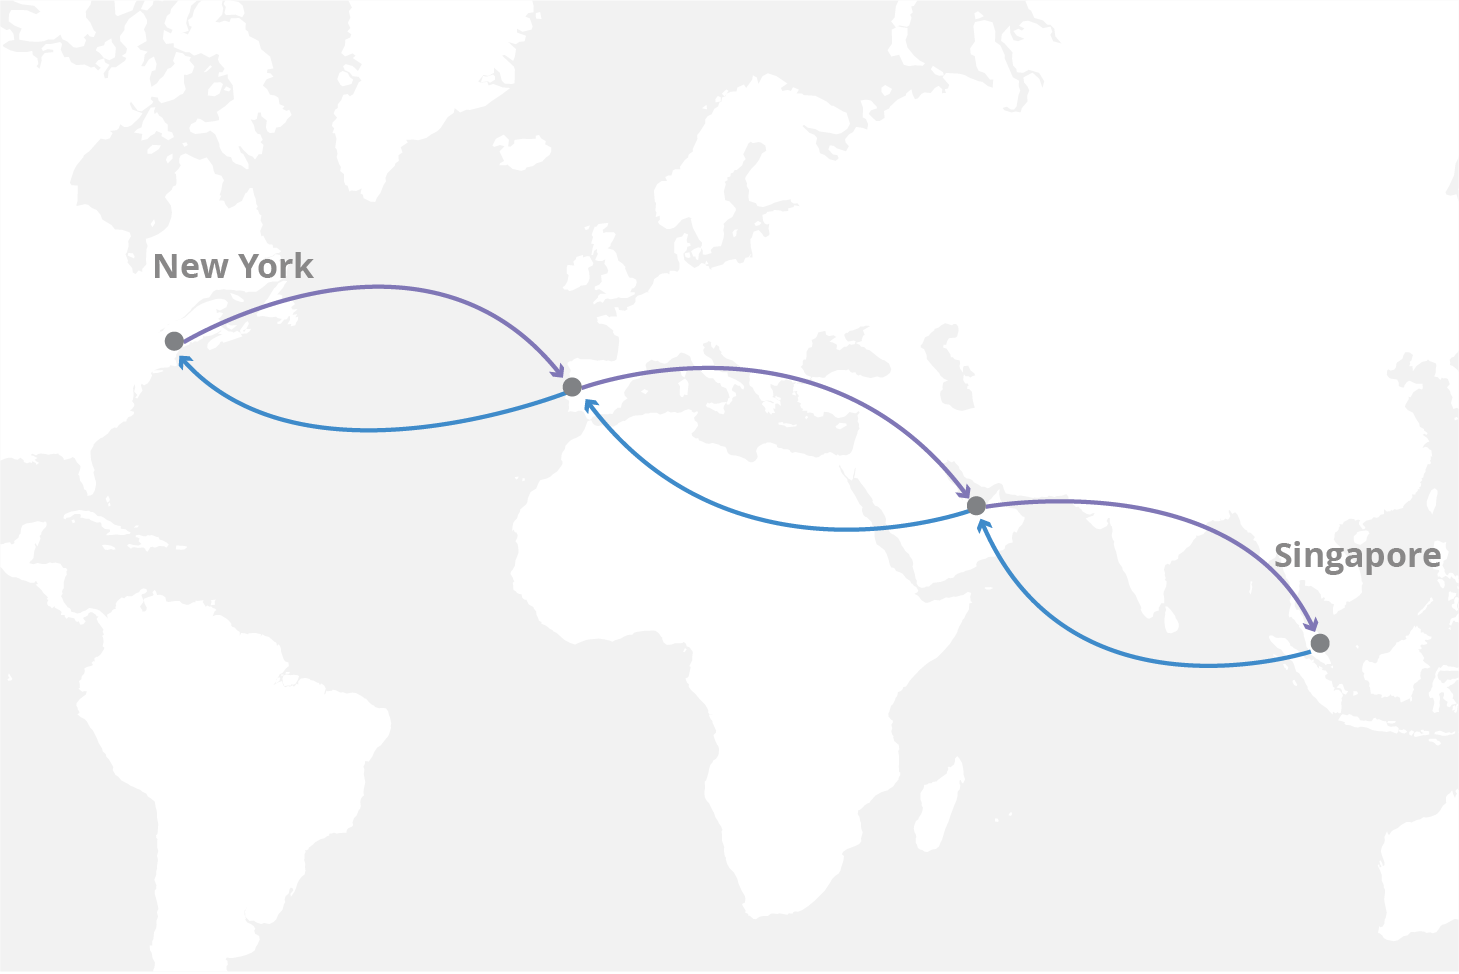 Round-trip time map